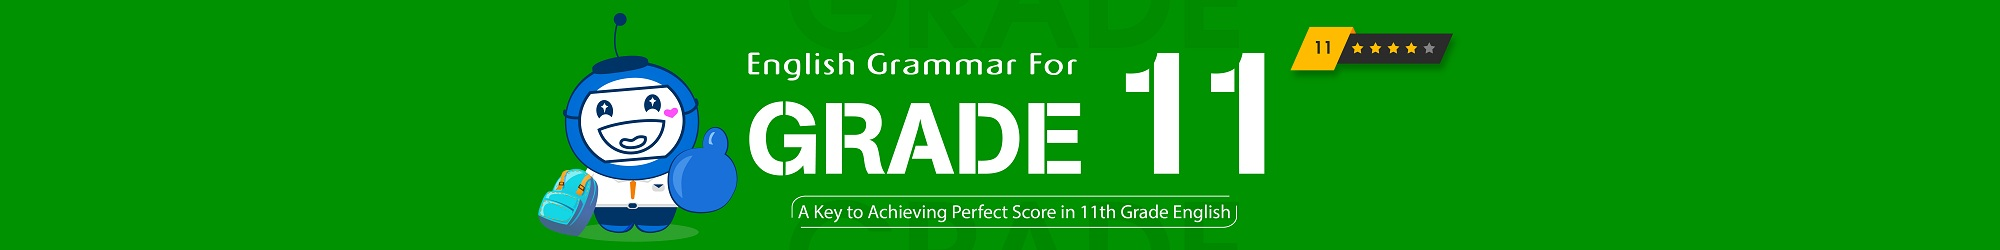 GRAMMAR FOR 11TH GRADE banner